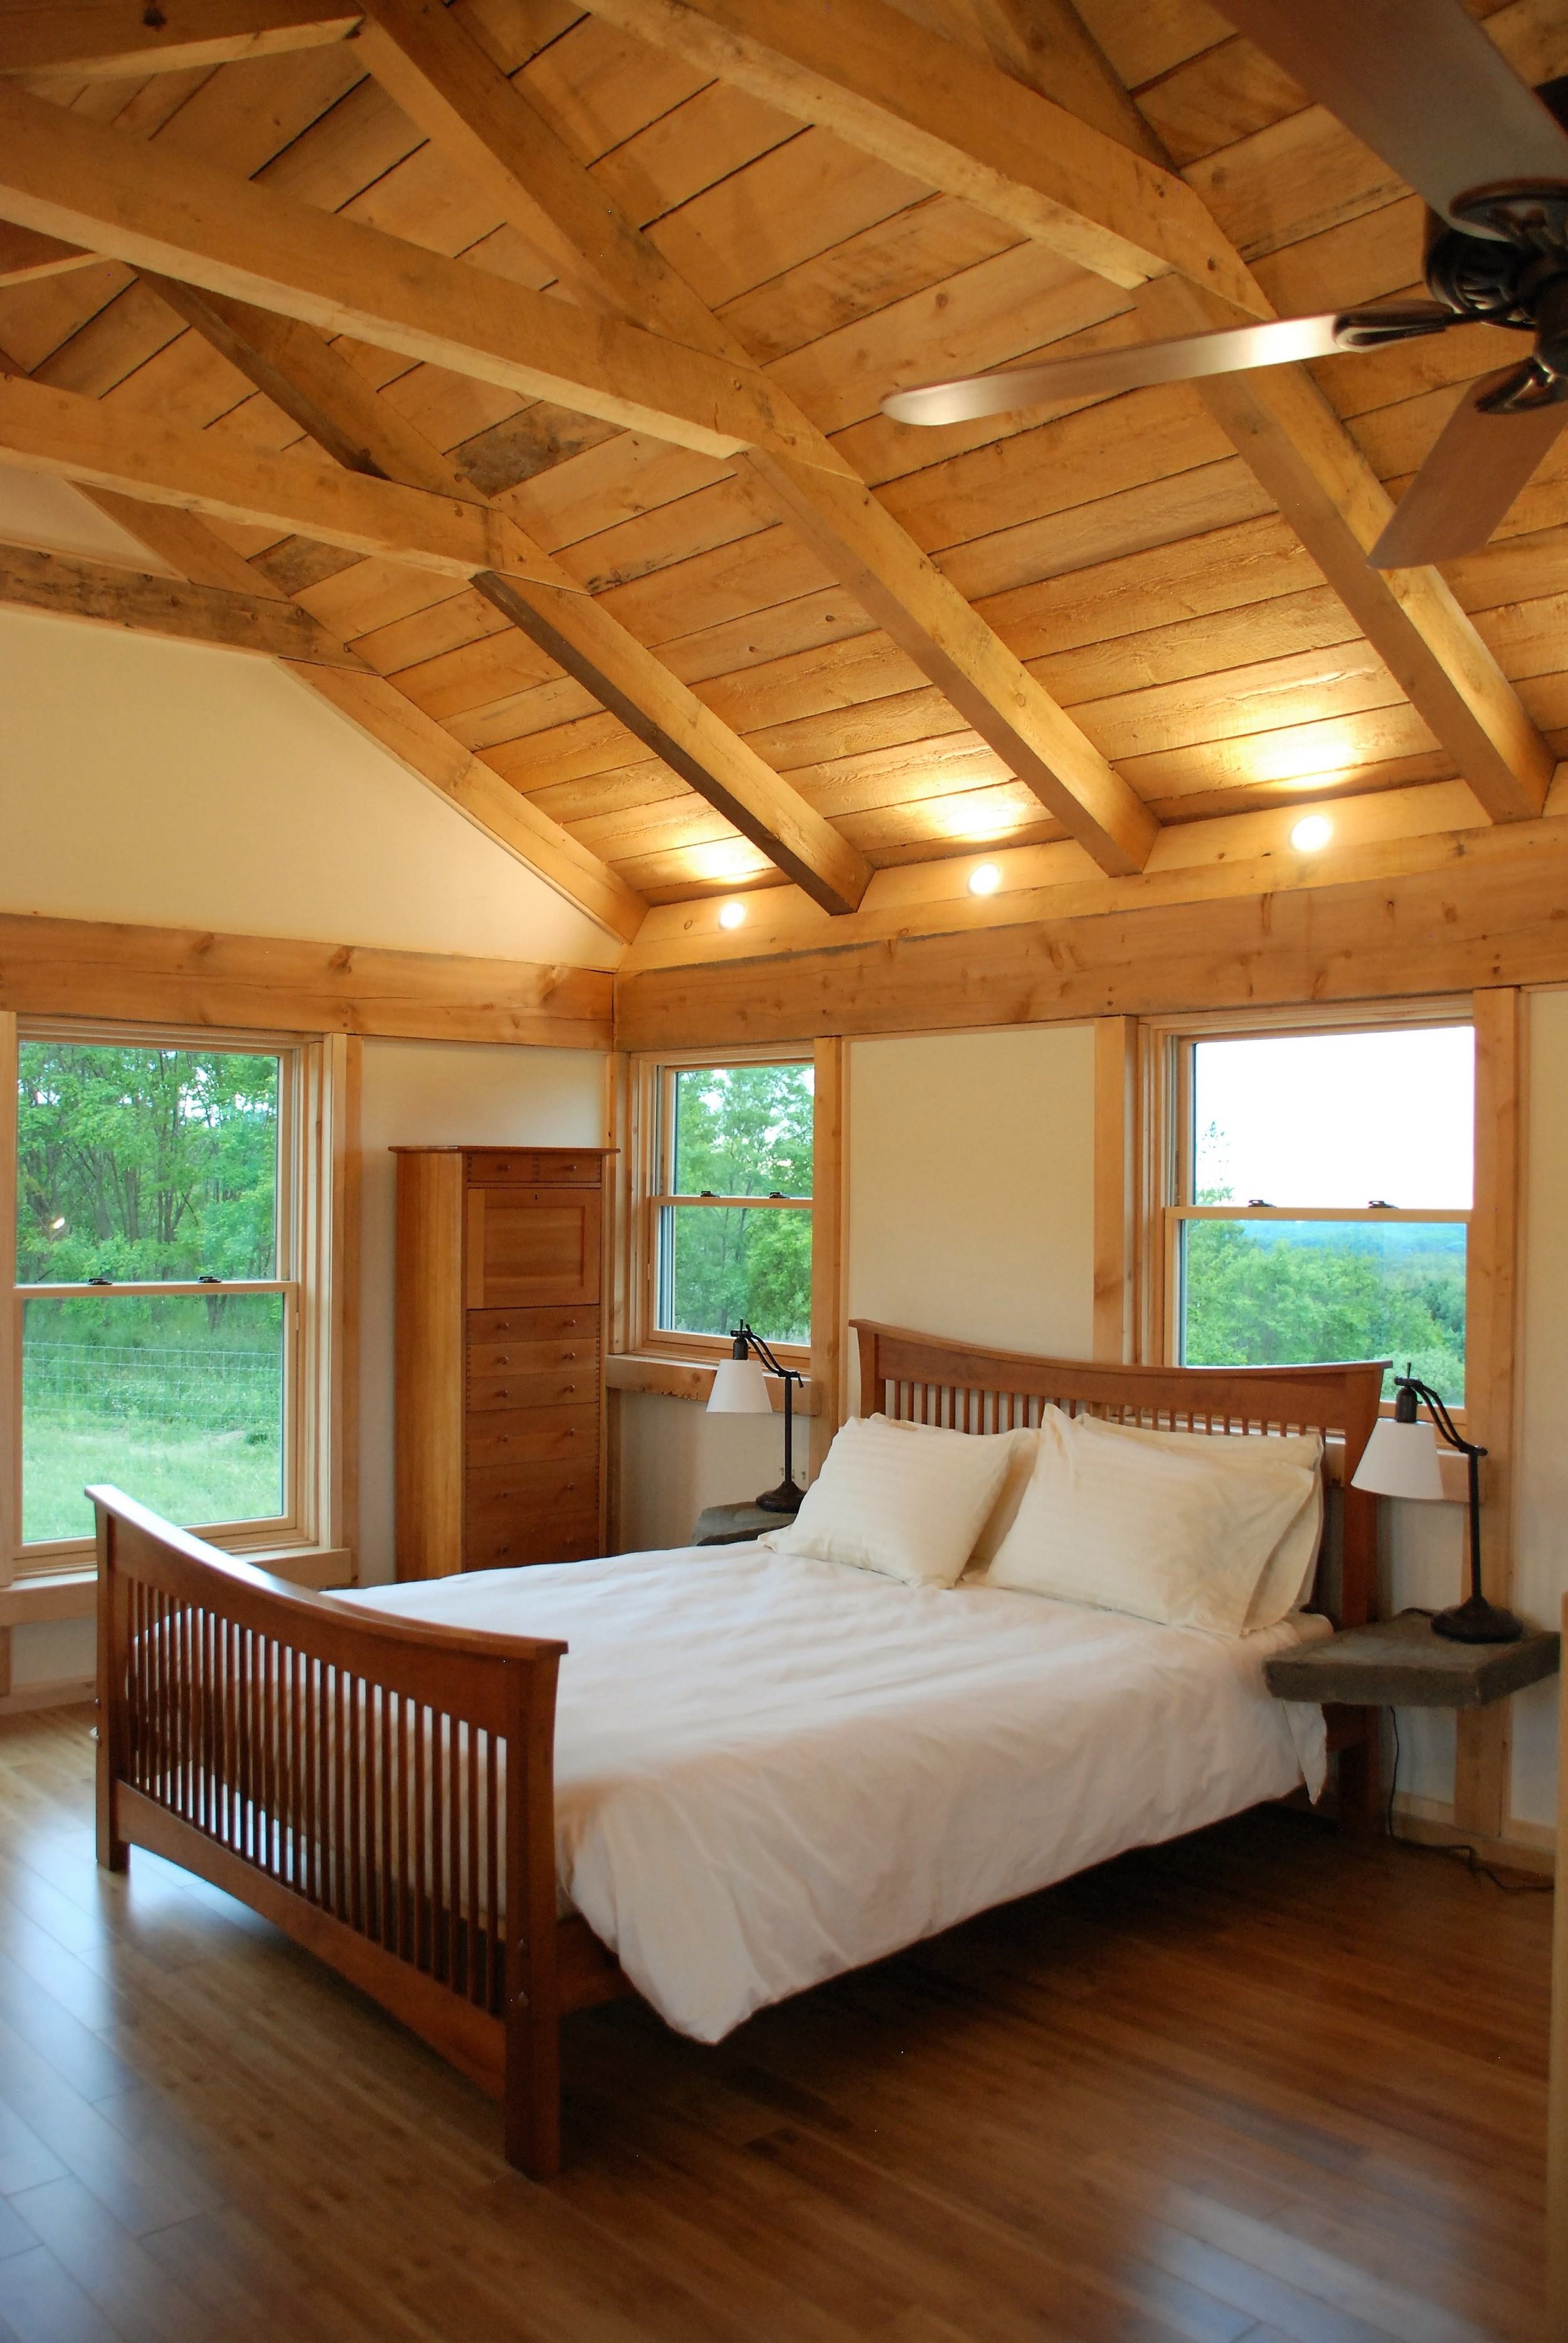 Tiny Timber house upstairs bedroom